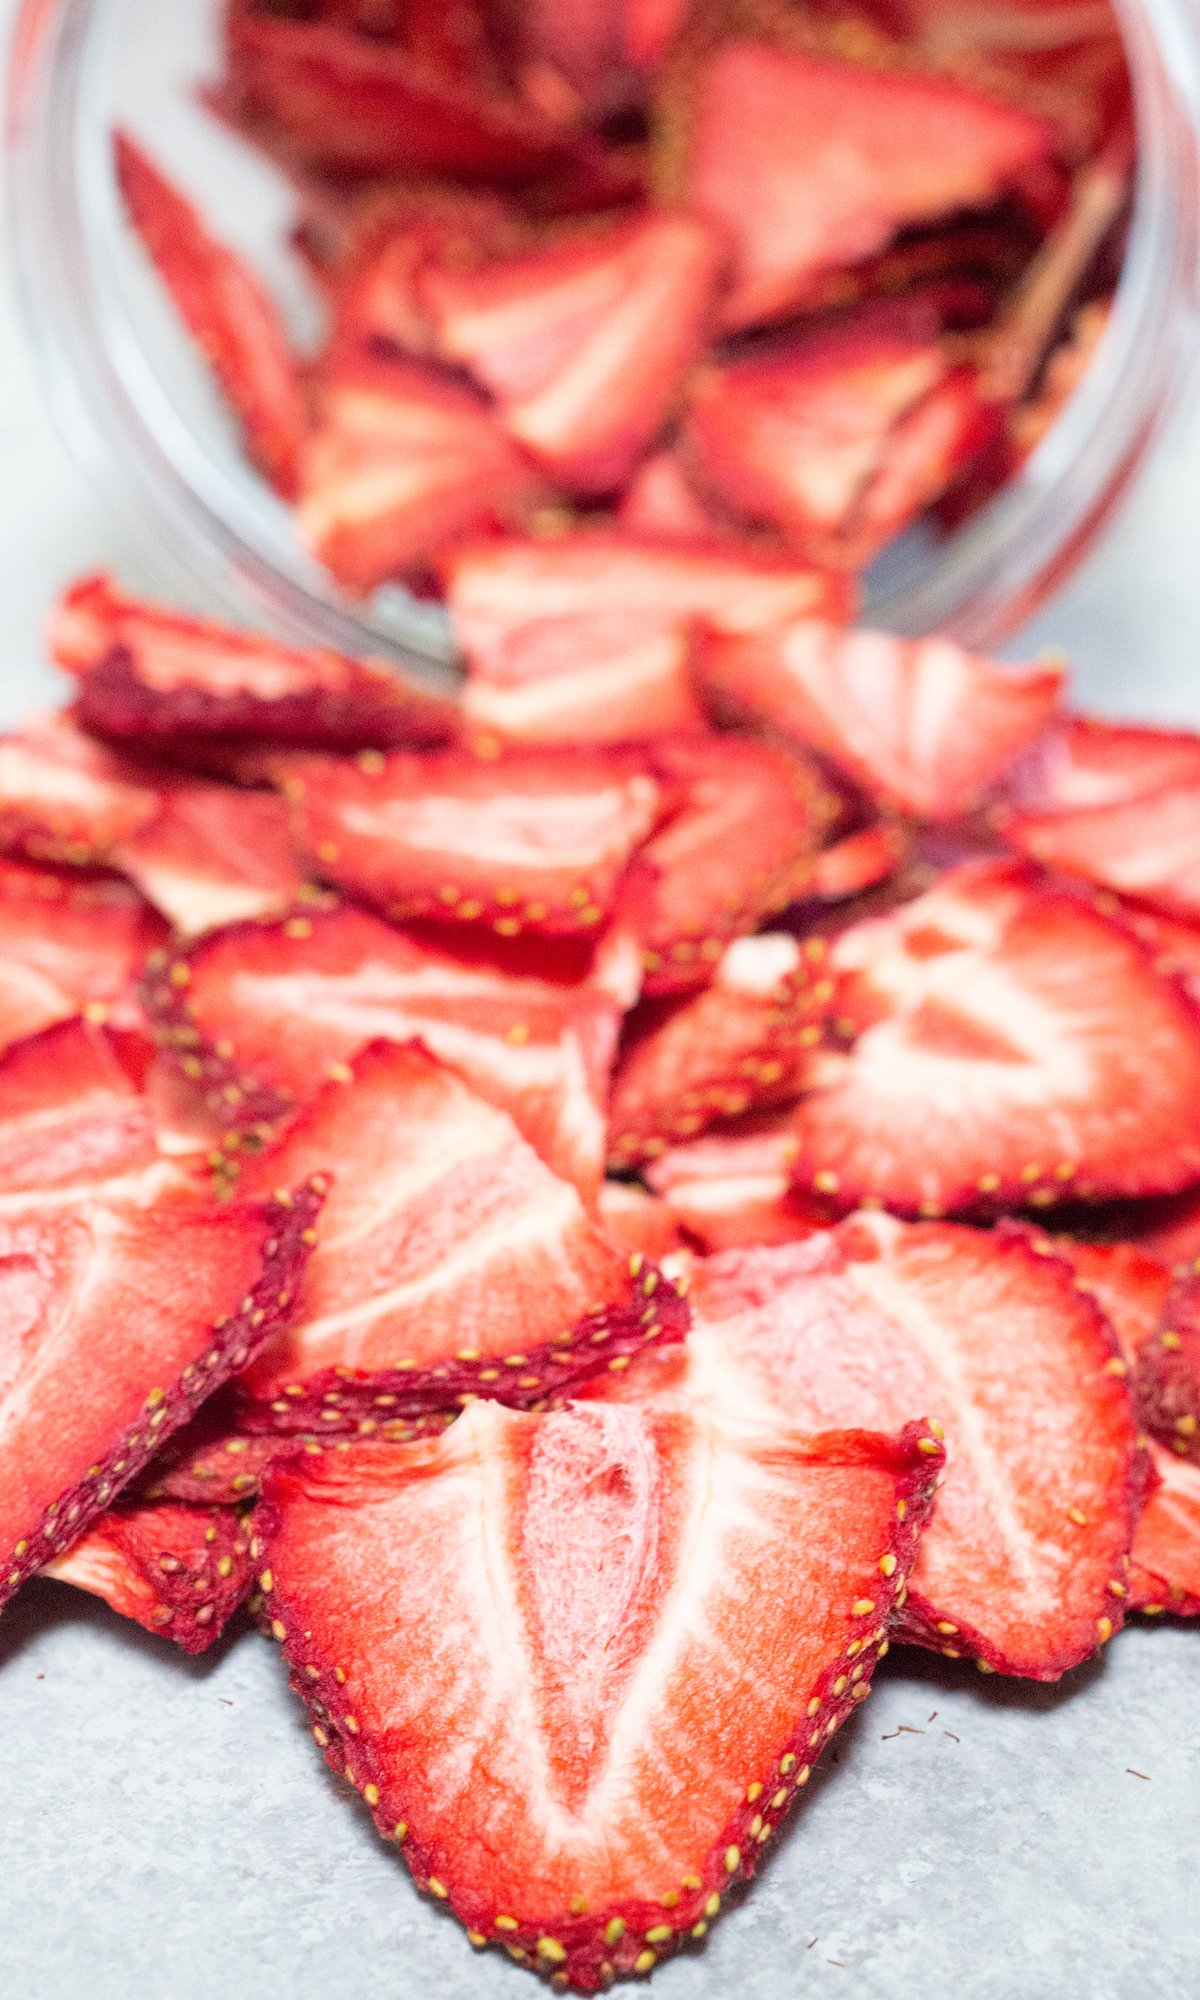 Dehydrated strawberry chips pouring out of a glass jar.